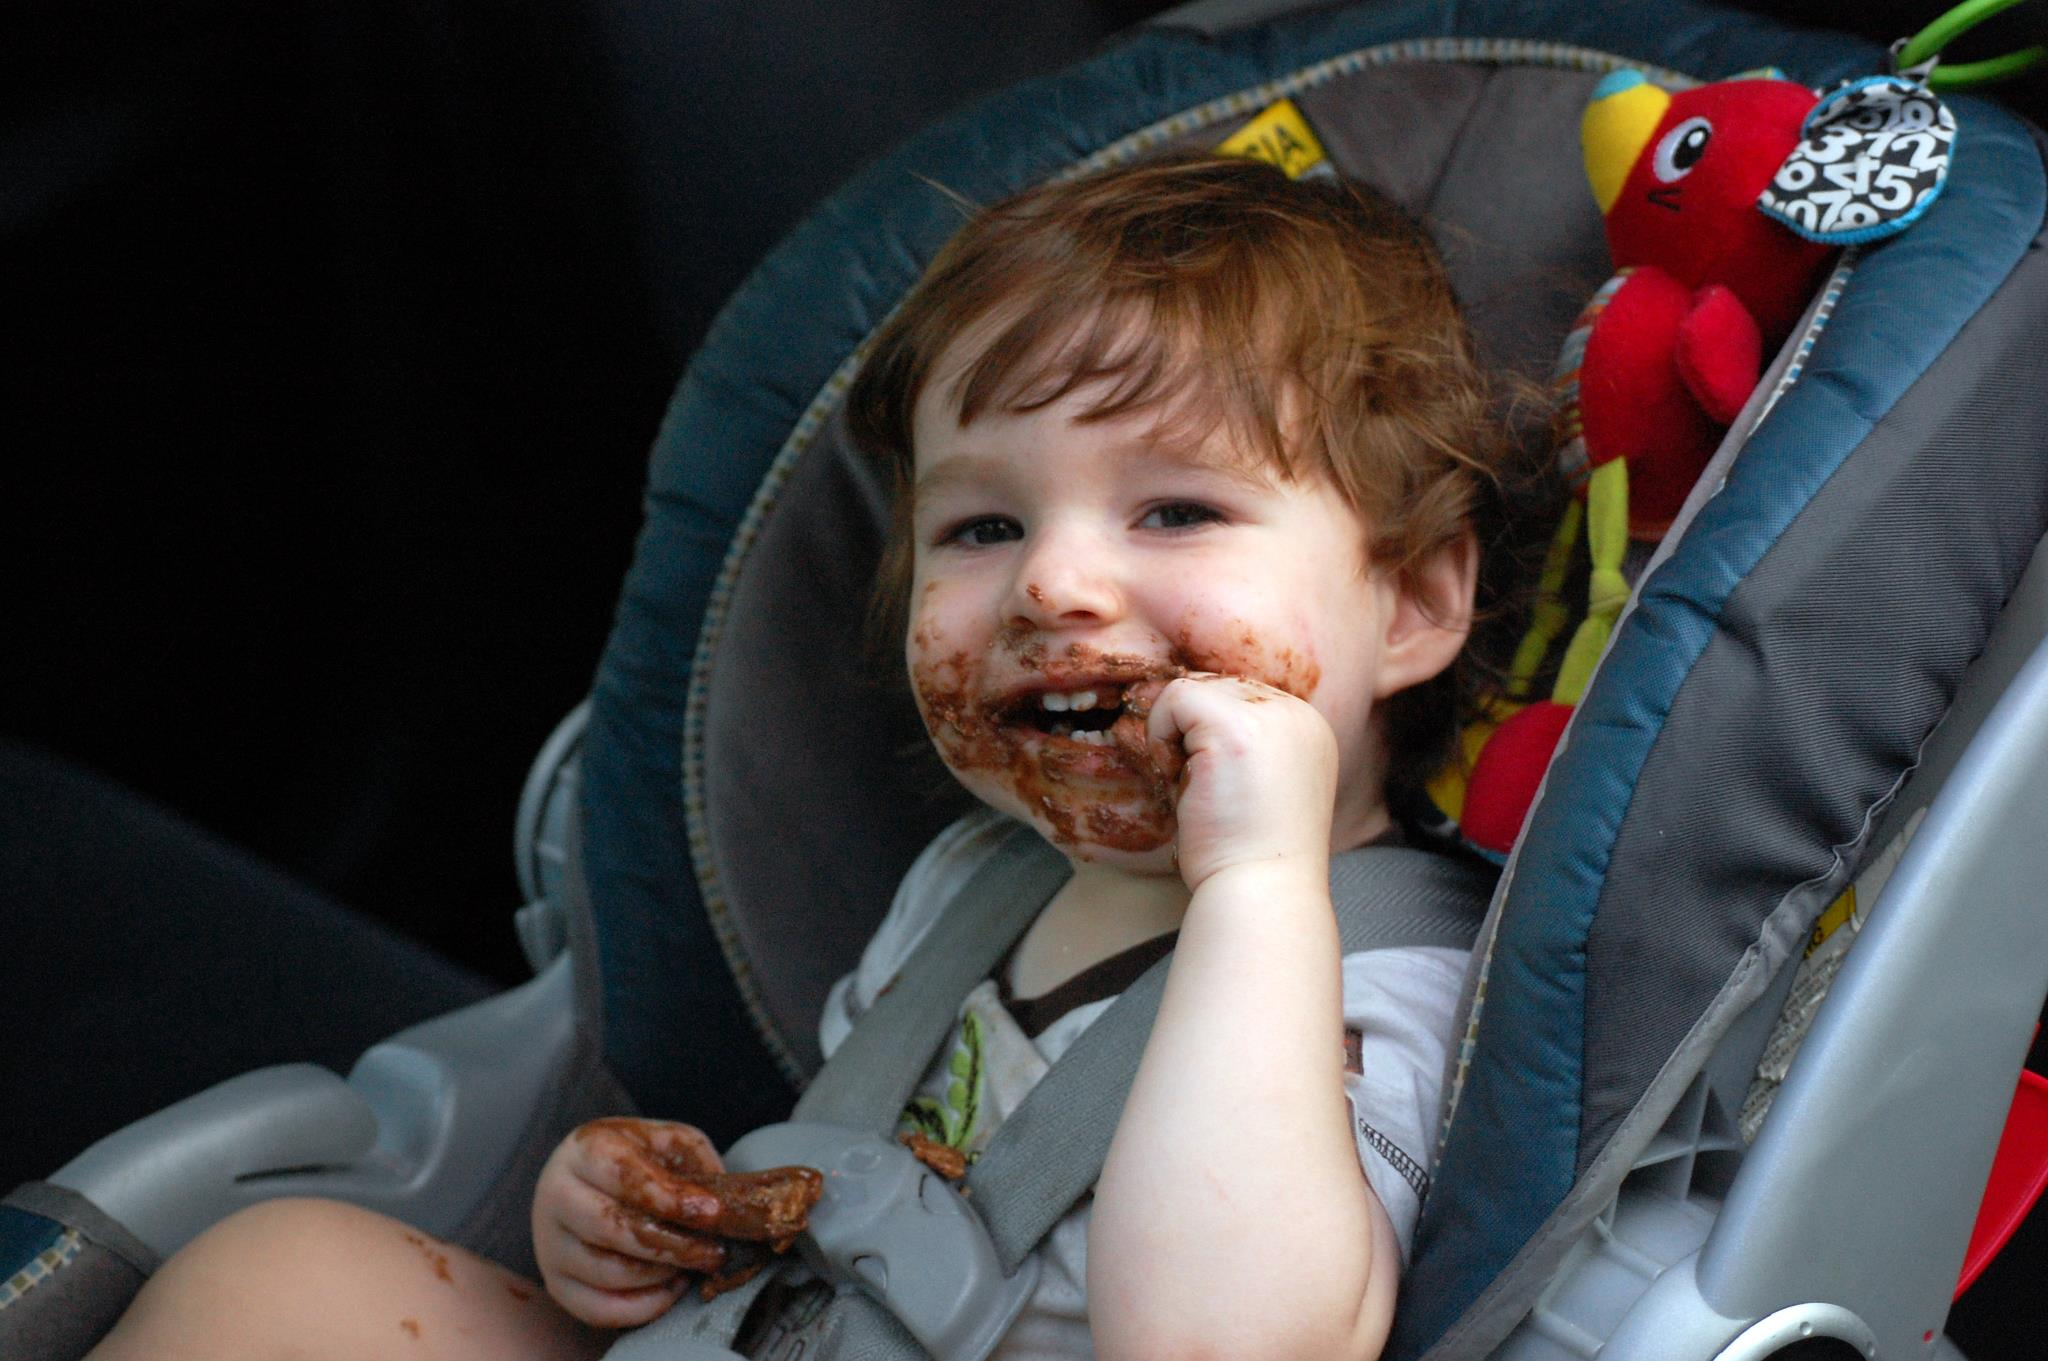 One year old is covered in chocolate and smiling